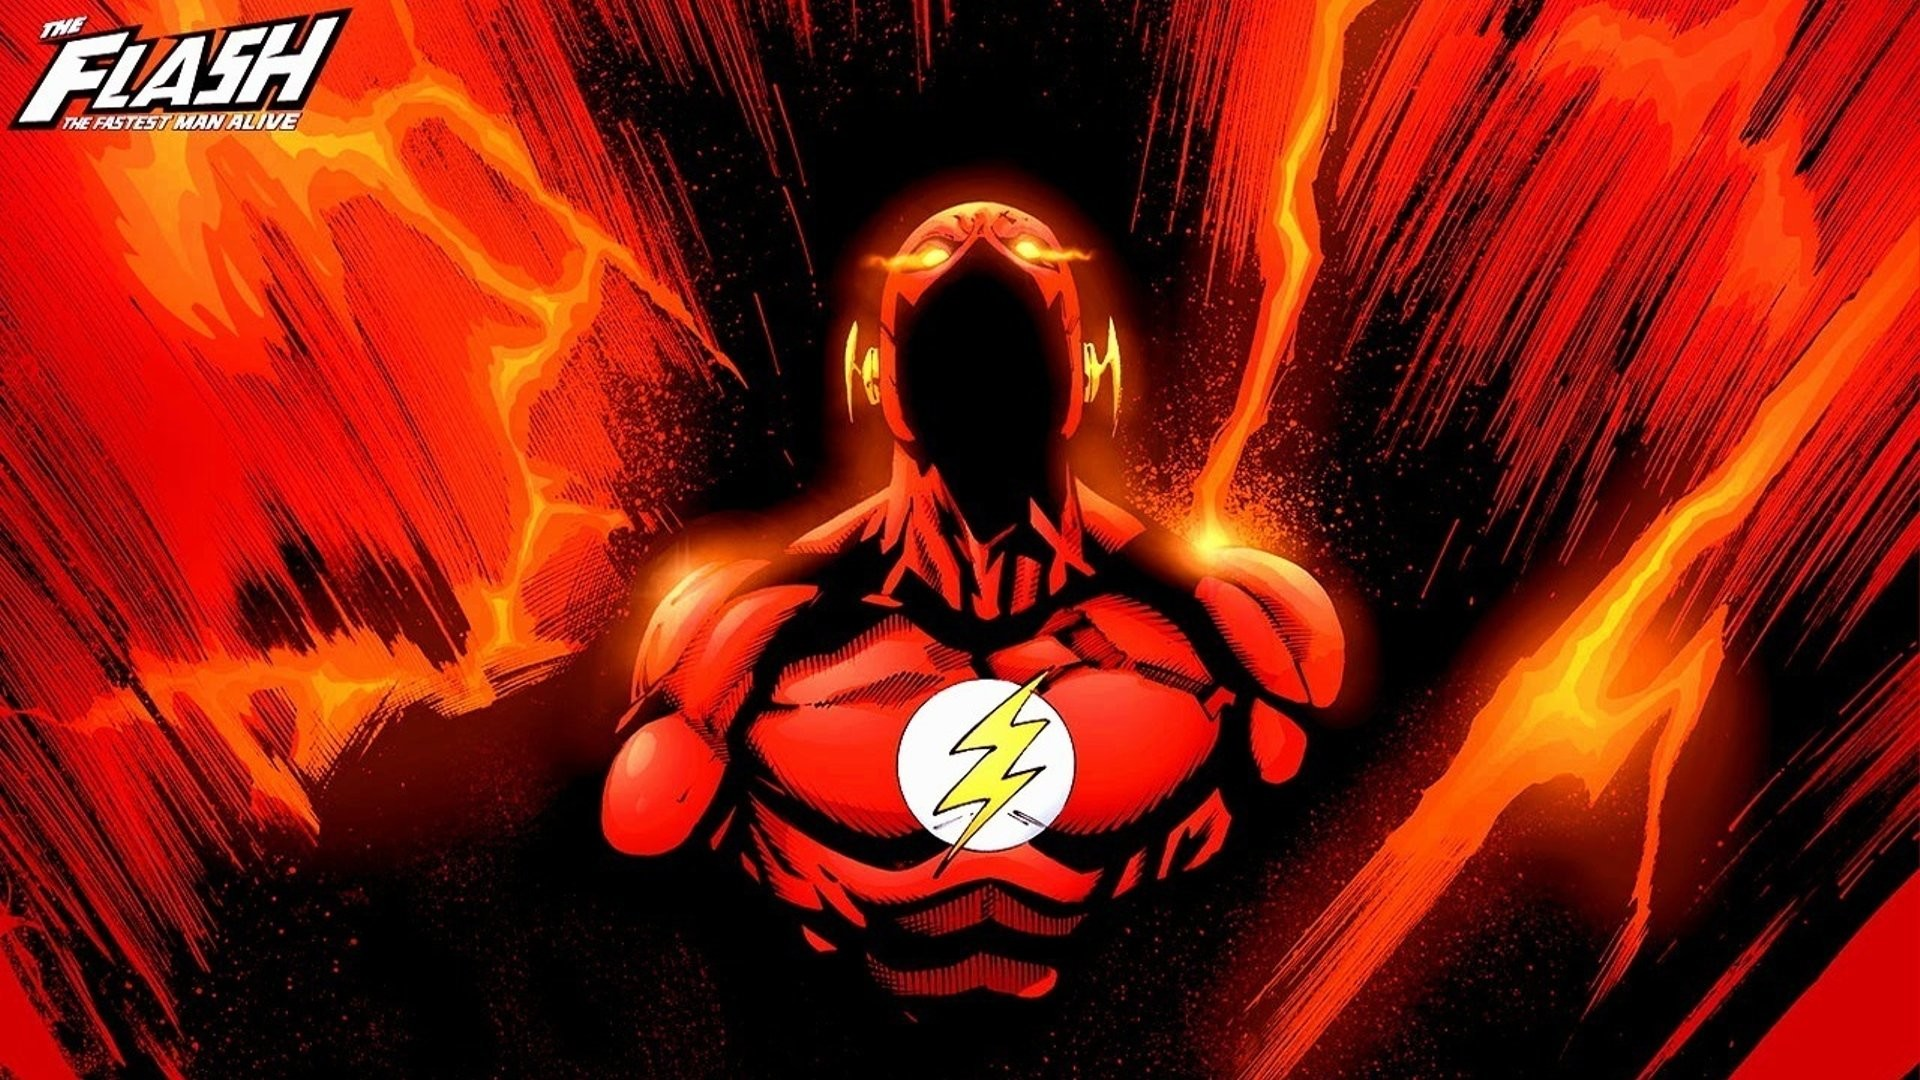 Barry Allen the Flash wallpapers HD free Download   HD Wallpapers    Pinterest   Flash wallpaper, Hd wallpaper and Wallpaper